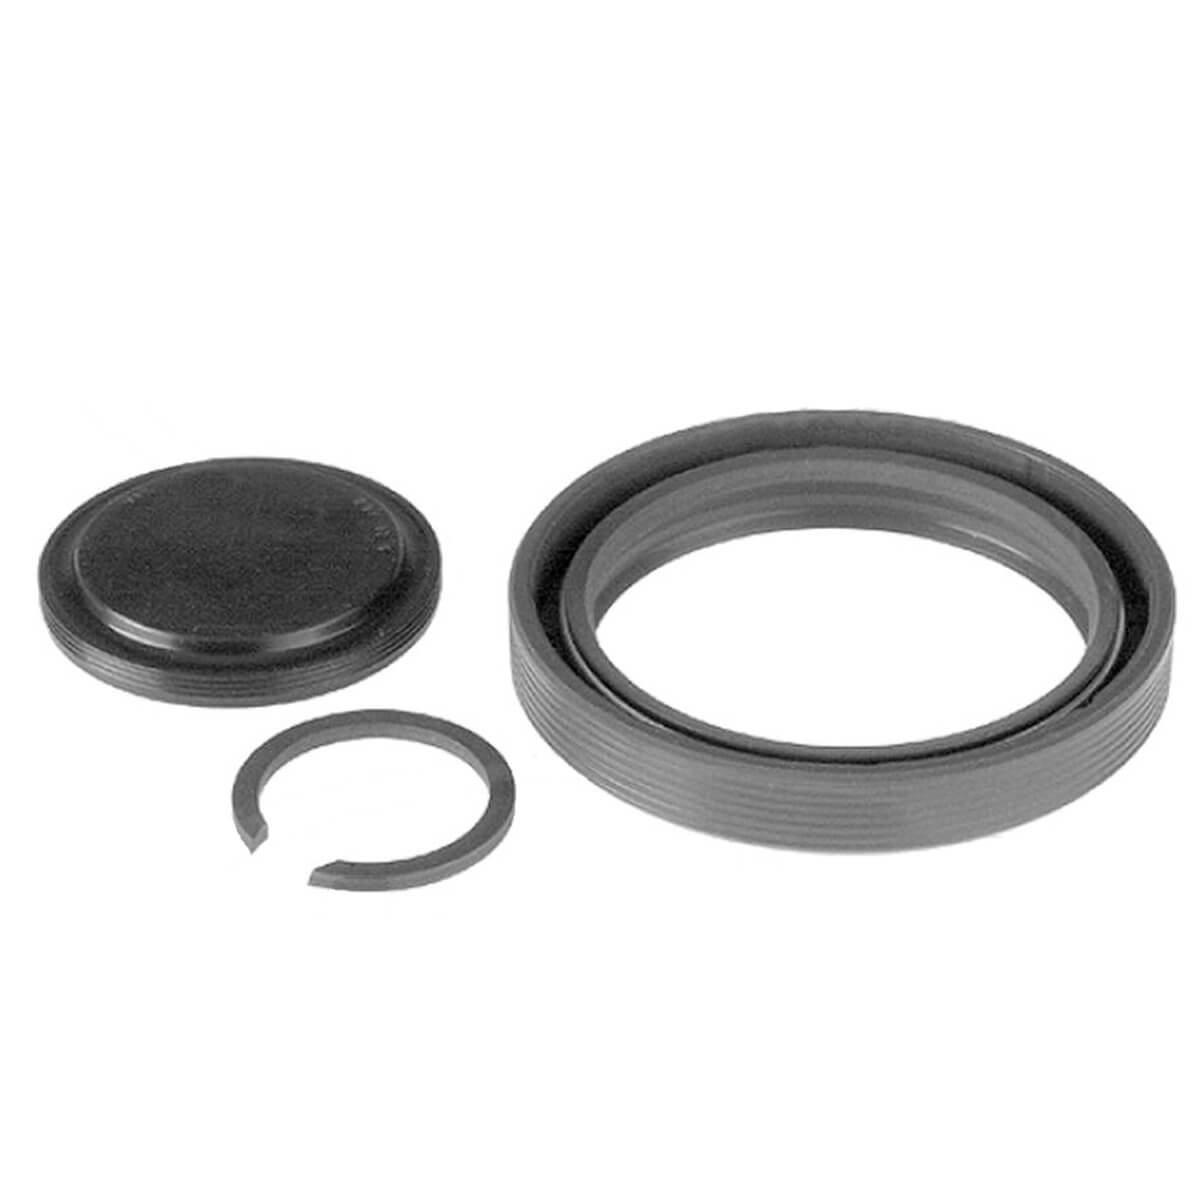 Automatic Transmission Flange Repair Kit